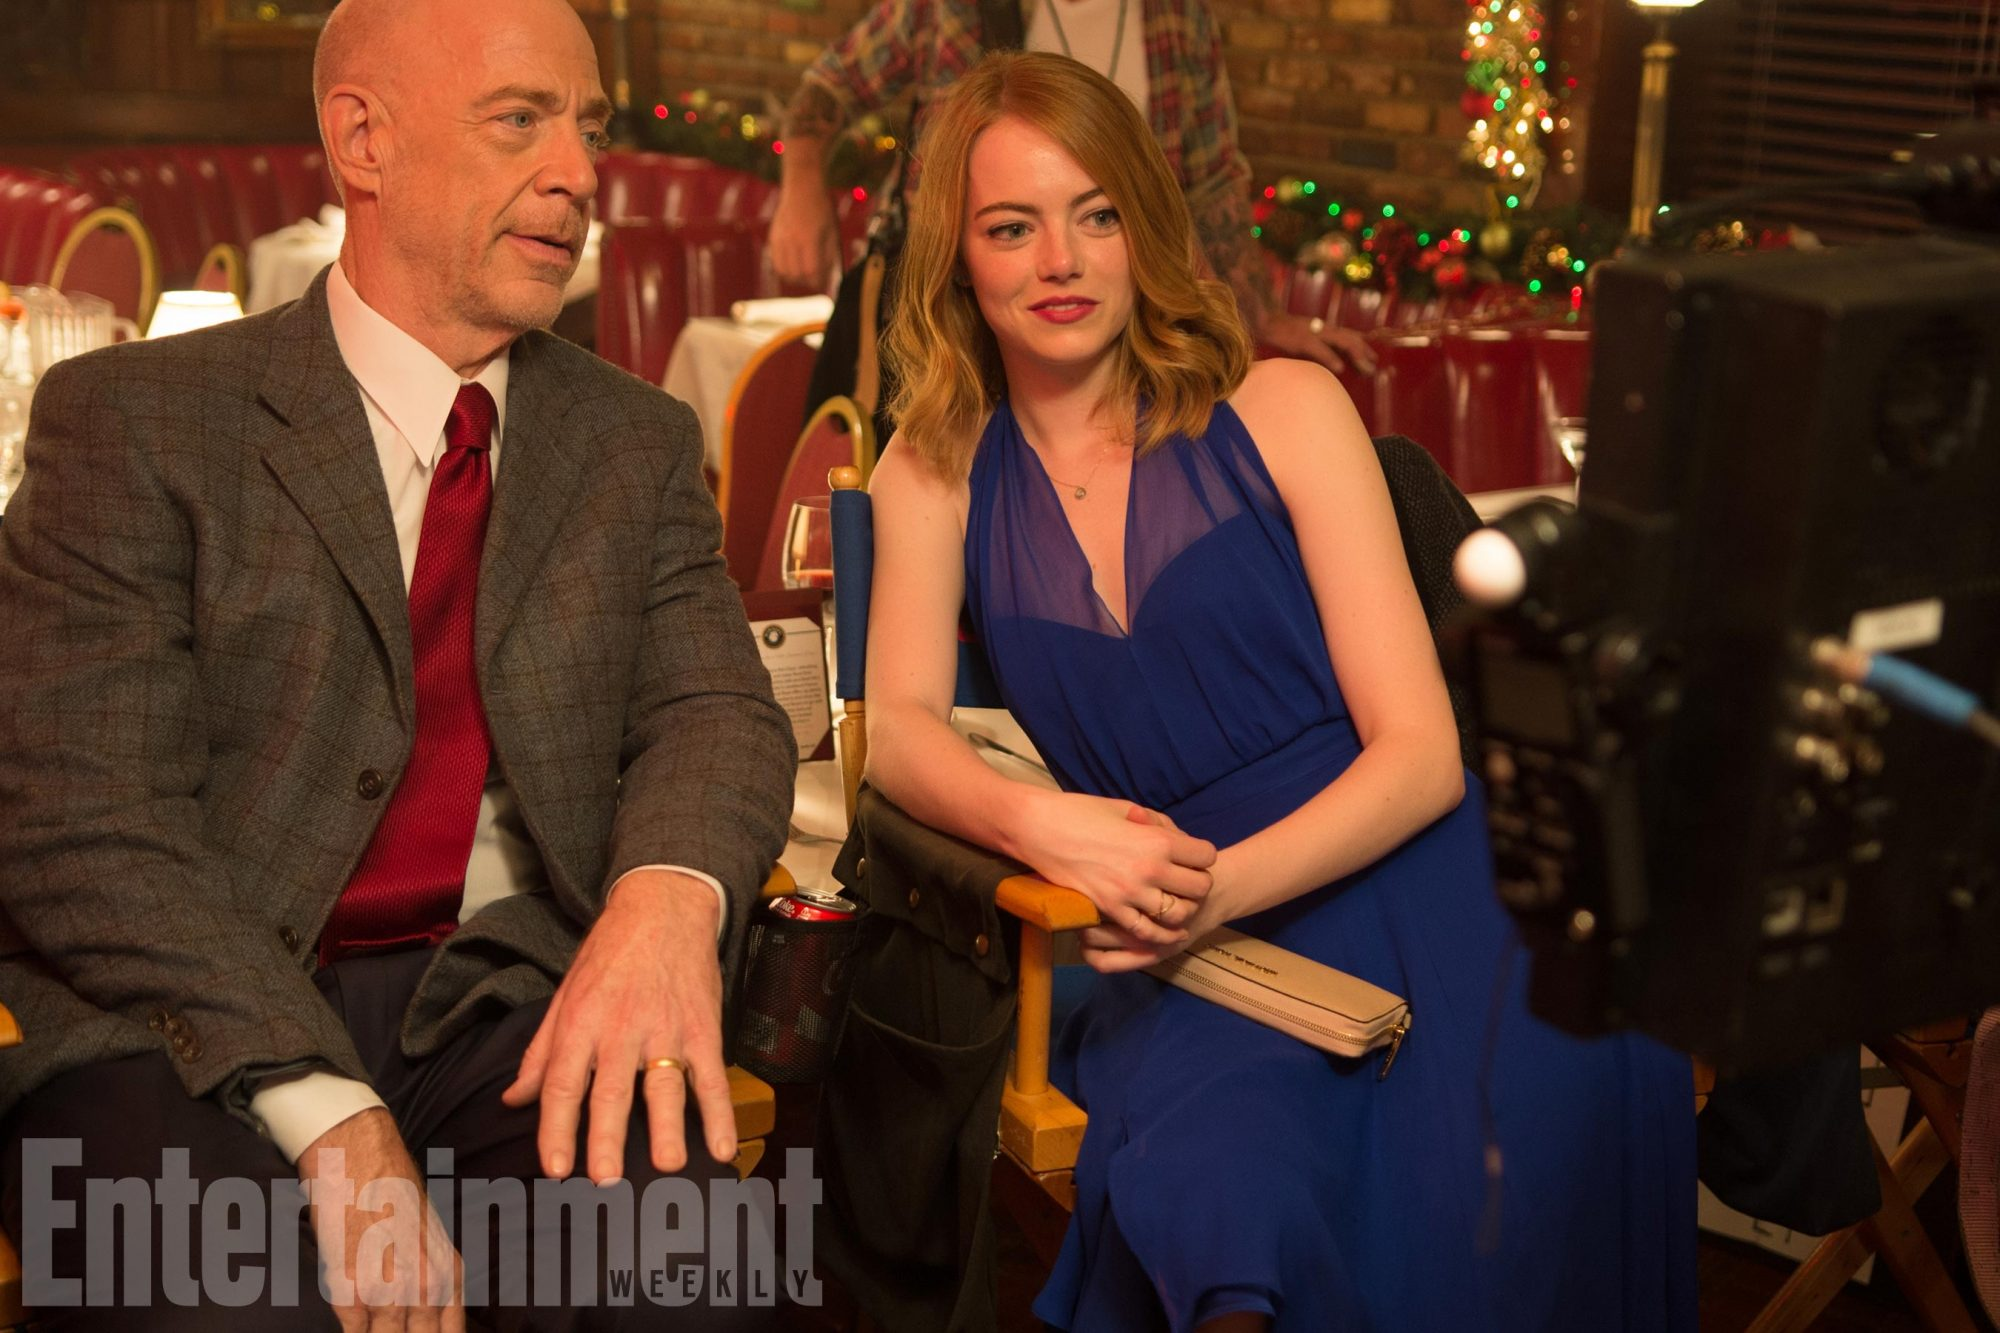 J.K. Simmons and Emma Stone